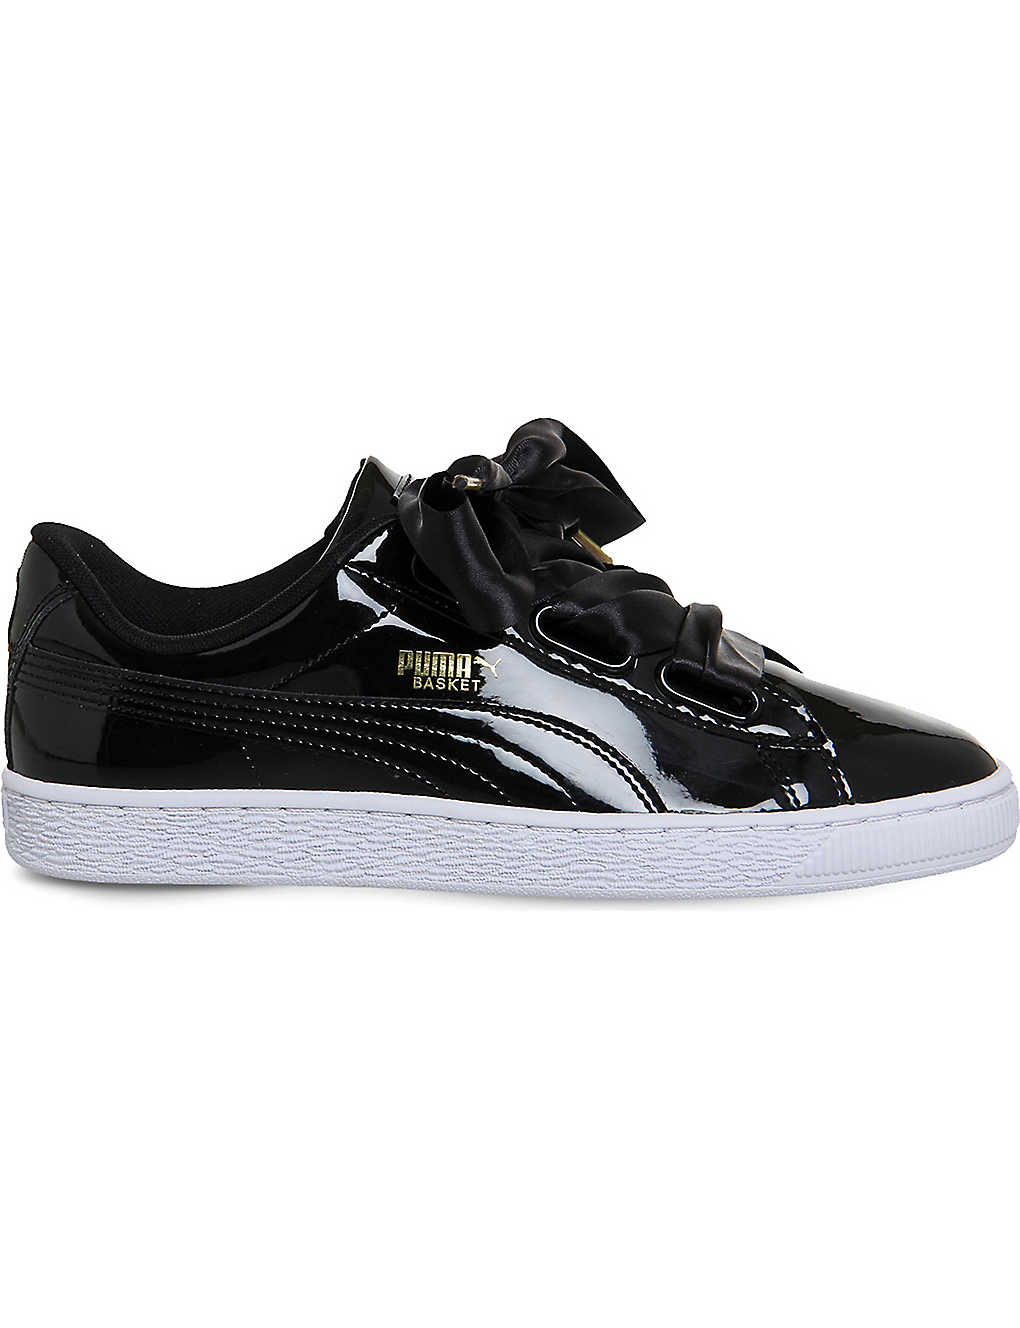 c5be3e449a8 PUMA - Basket Heart patent-leather trainers